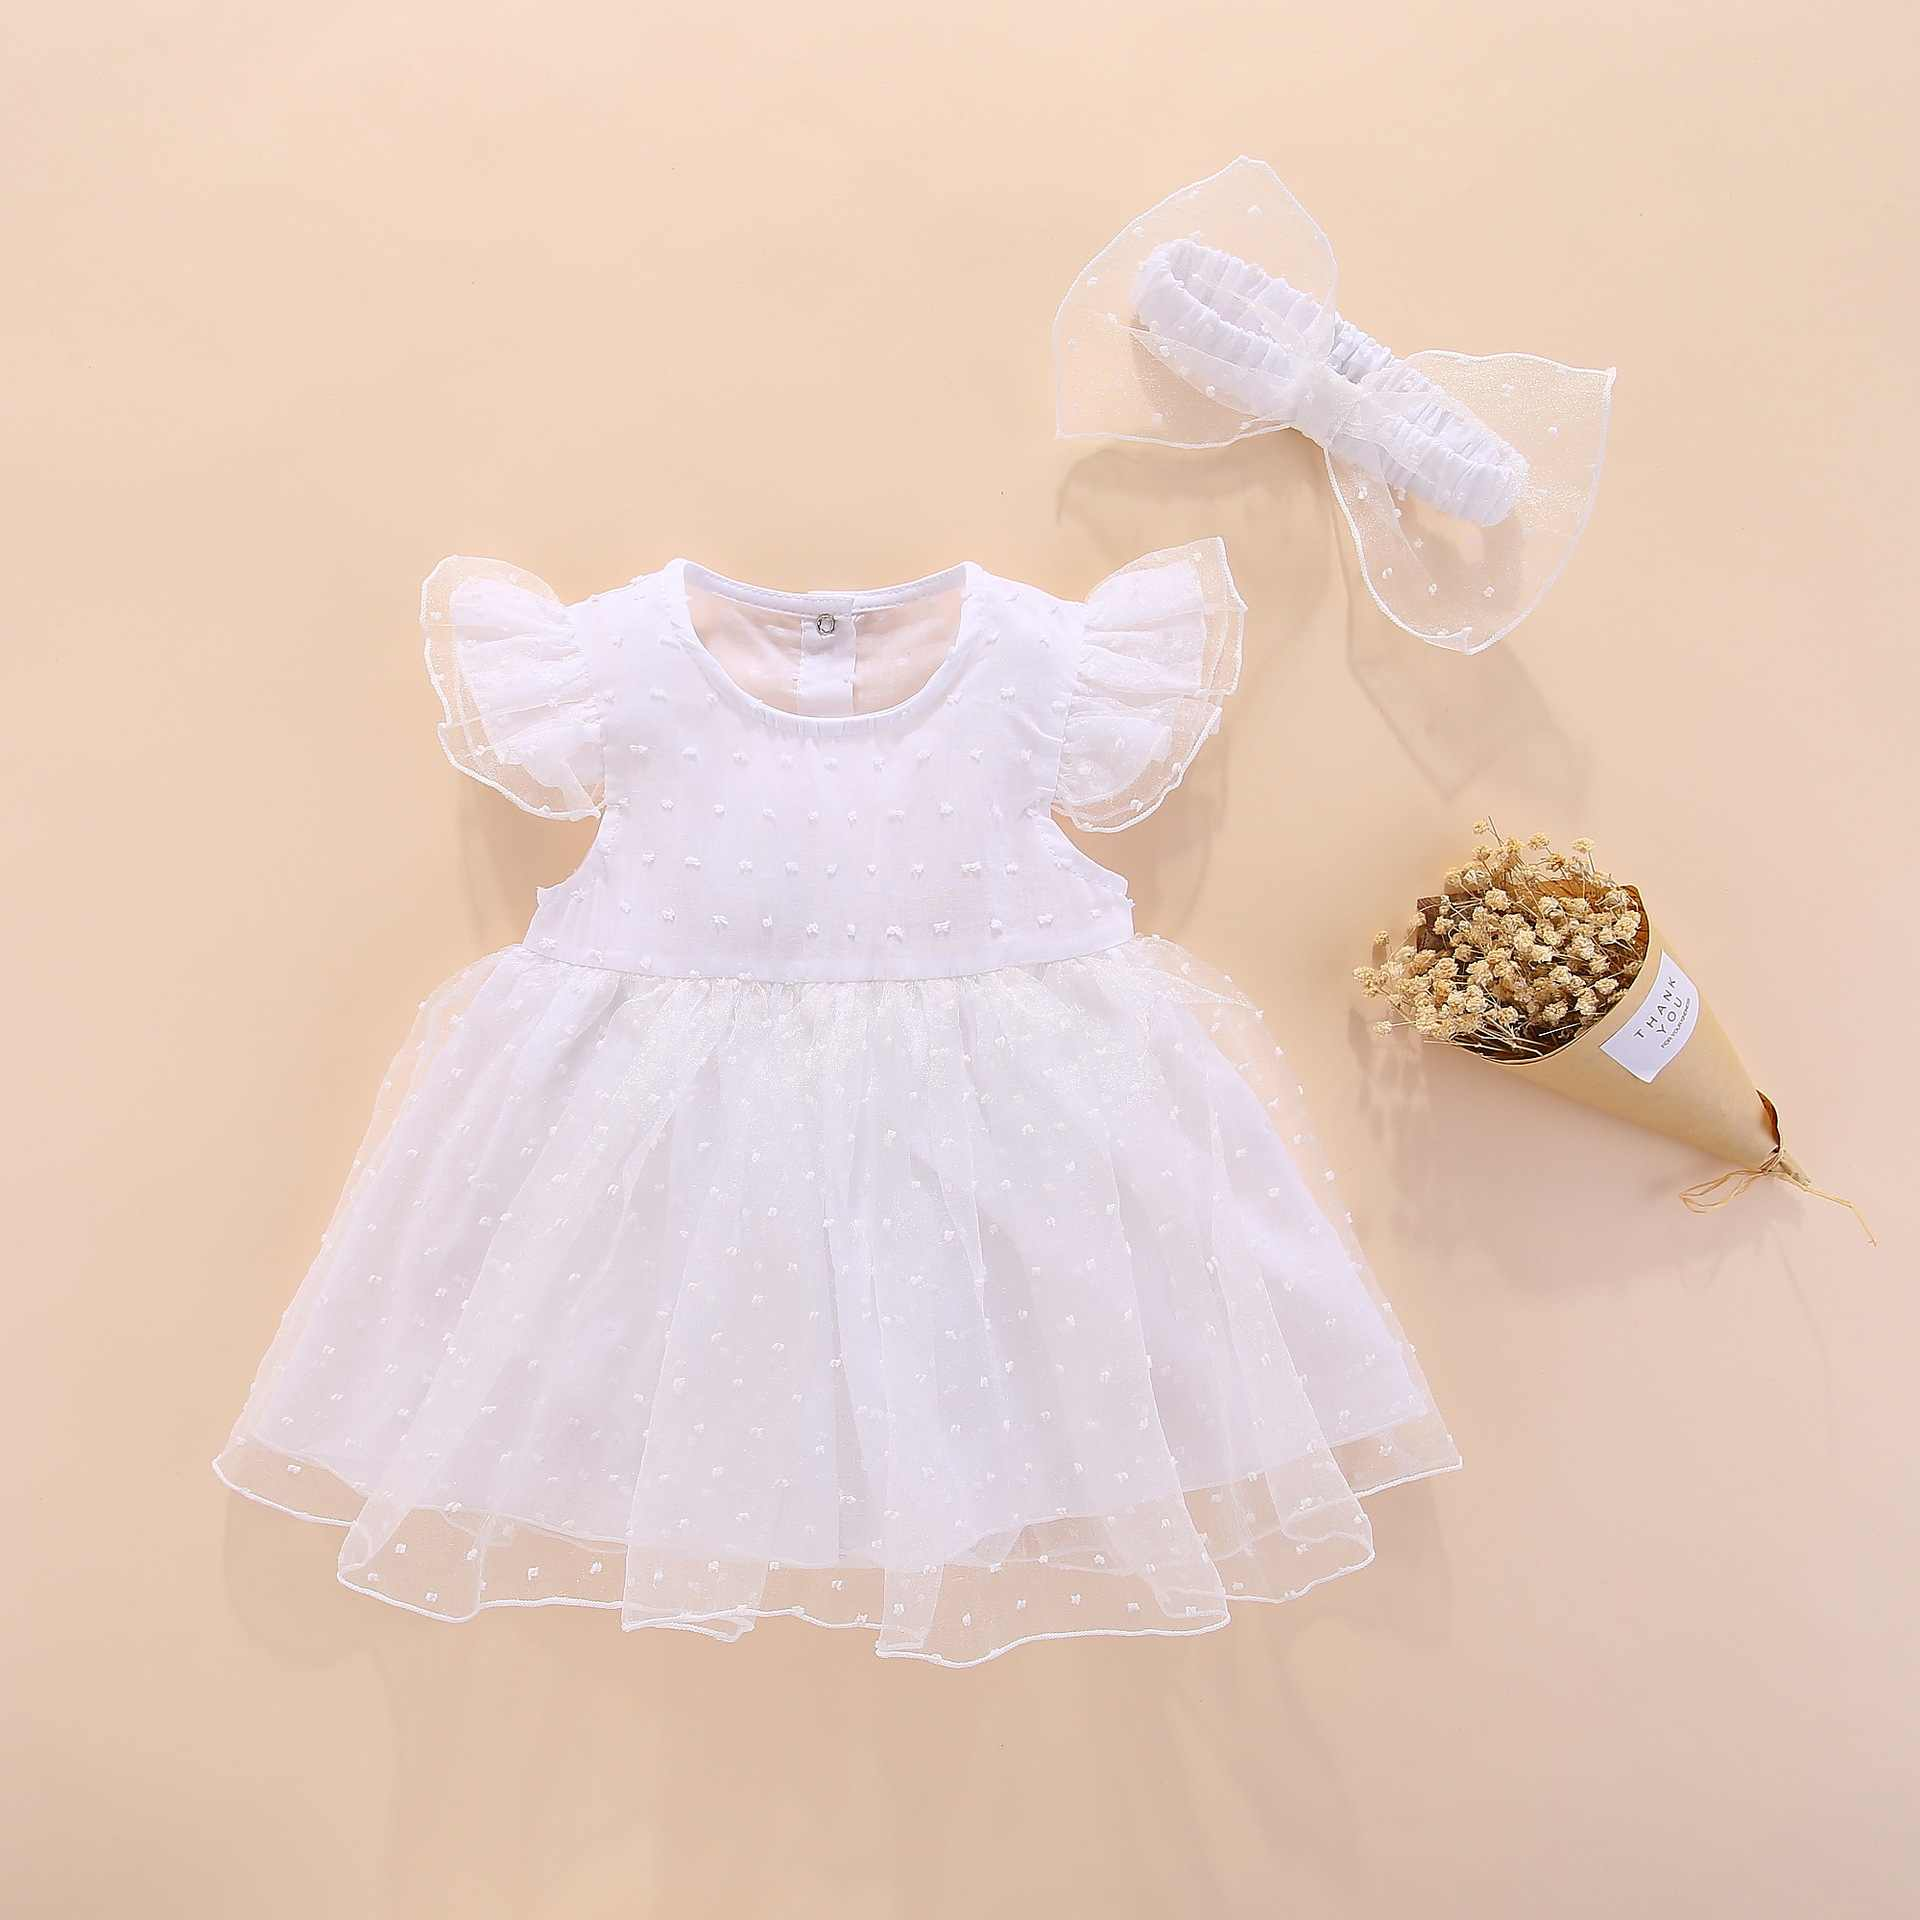 dd9ded117 Detail Feedback Questions about newborn baby dress lace set 3 months ...